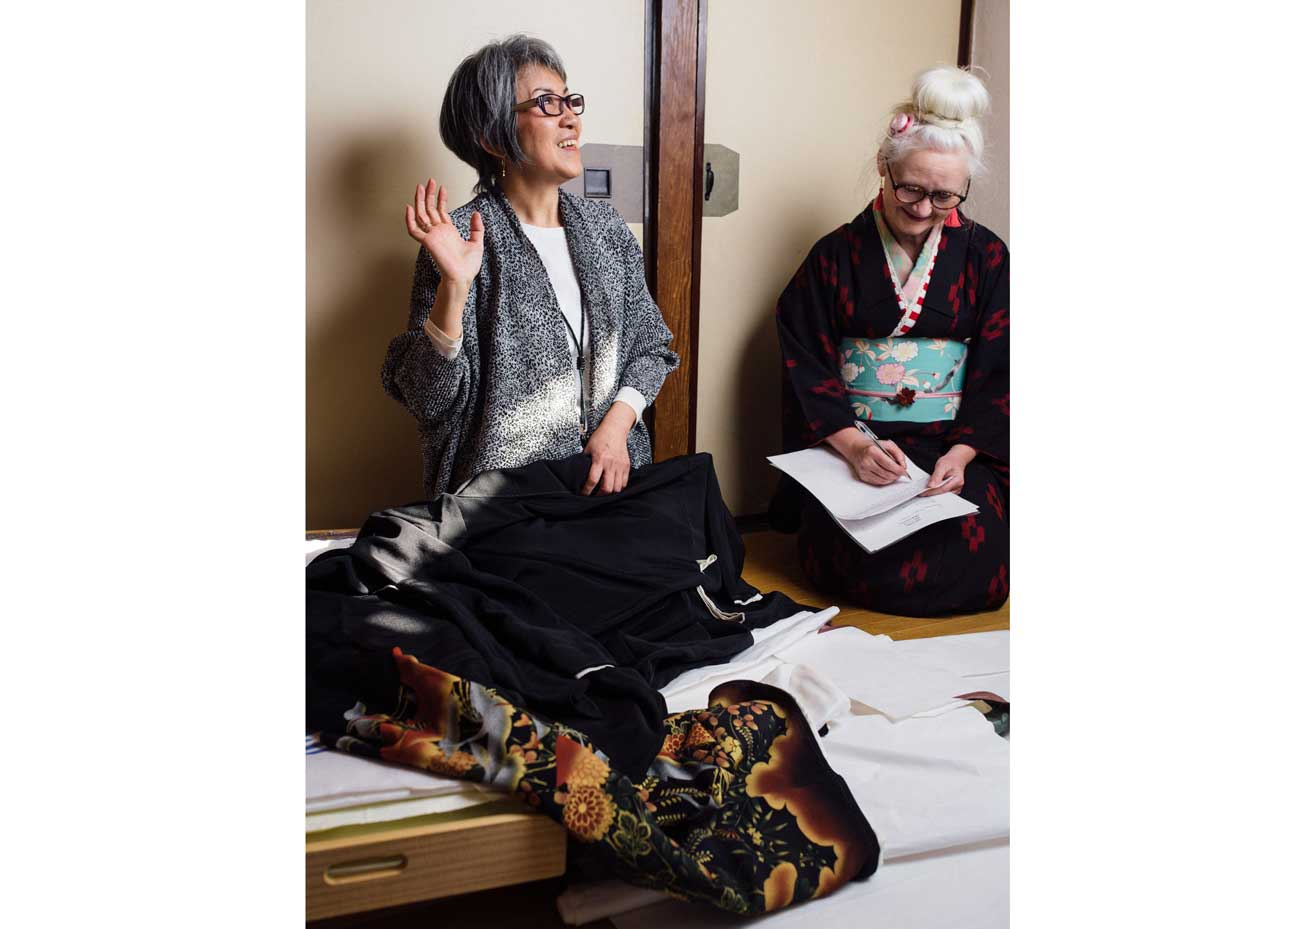 """© Todd Fong, Kimono Closet. Mitsuyo: """"If you go to an event with those Japanese Culture people you have to be very careful about what kimono you wear because their judgment is severe""""."""